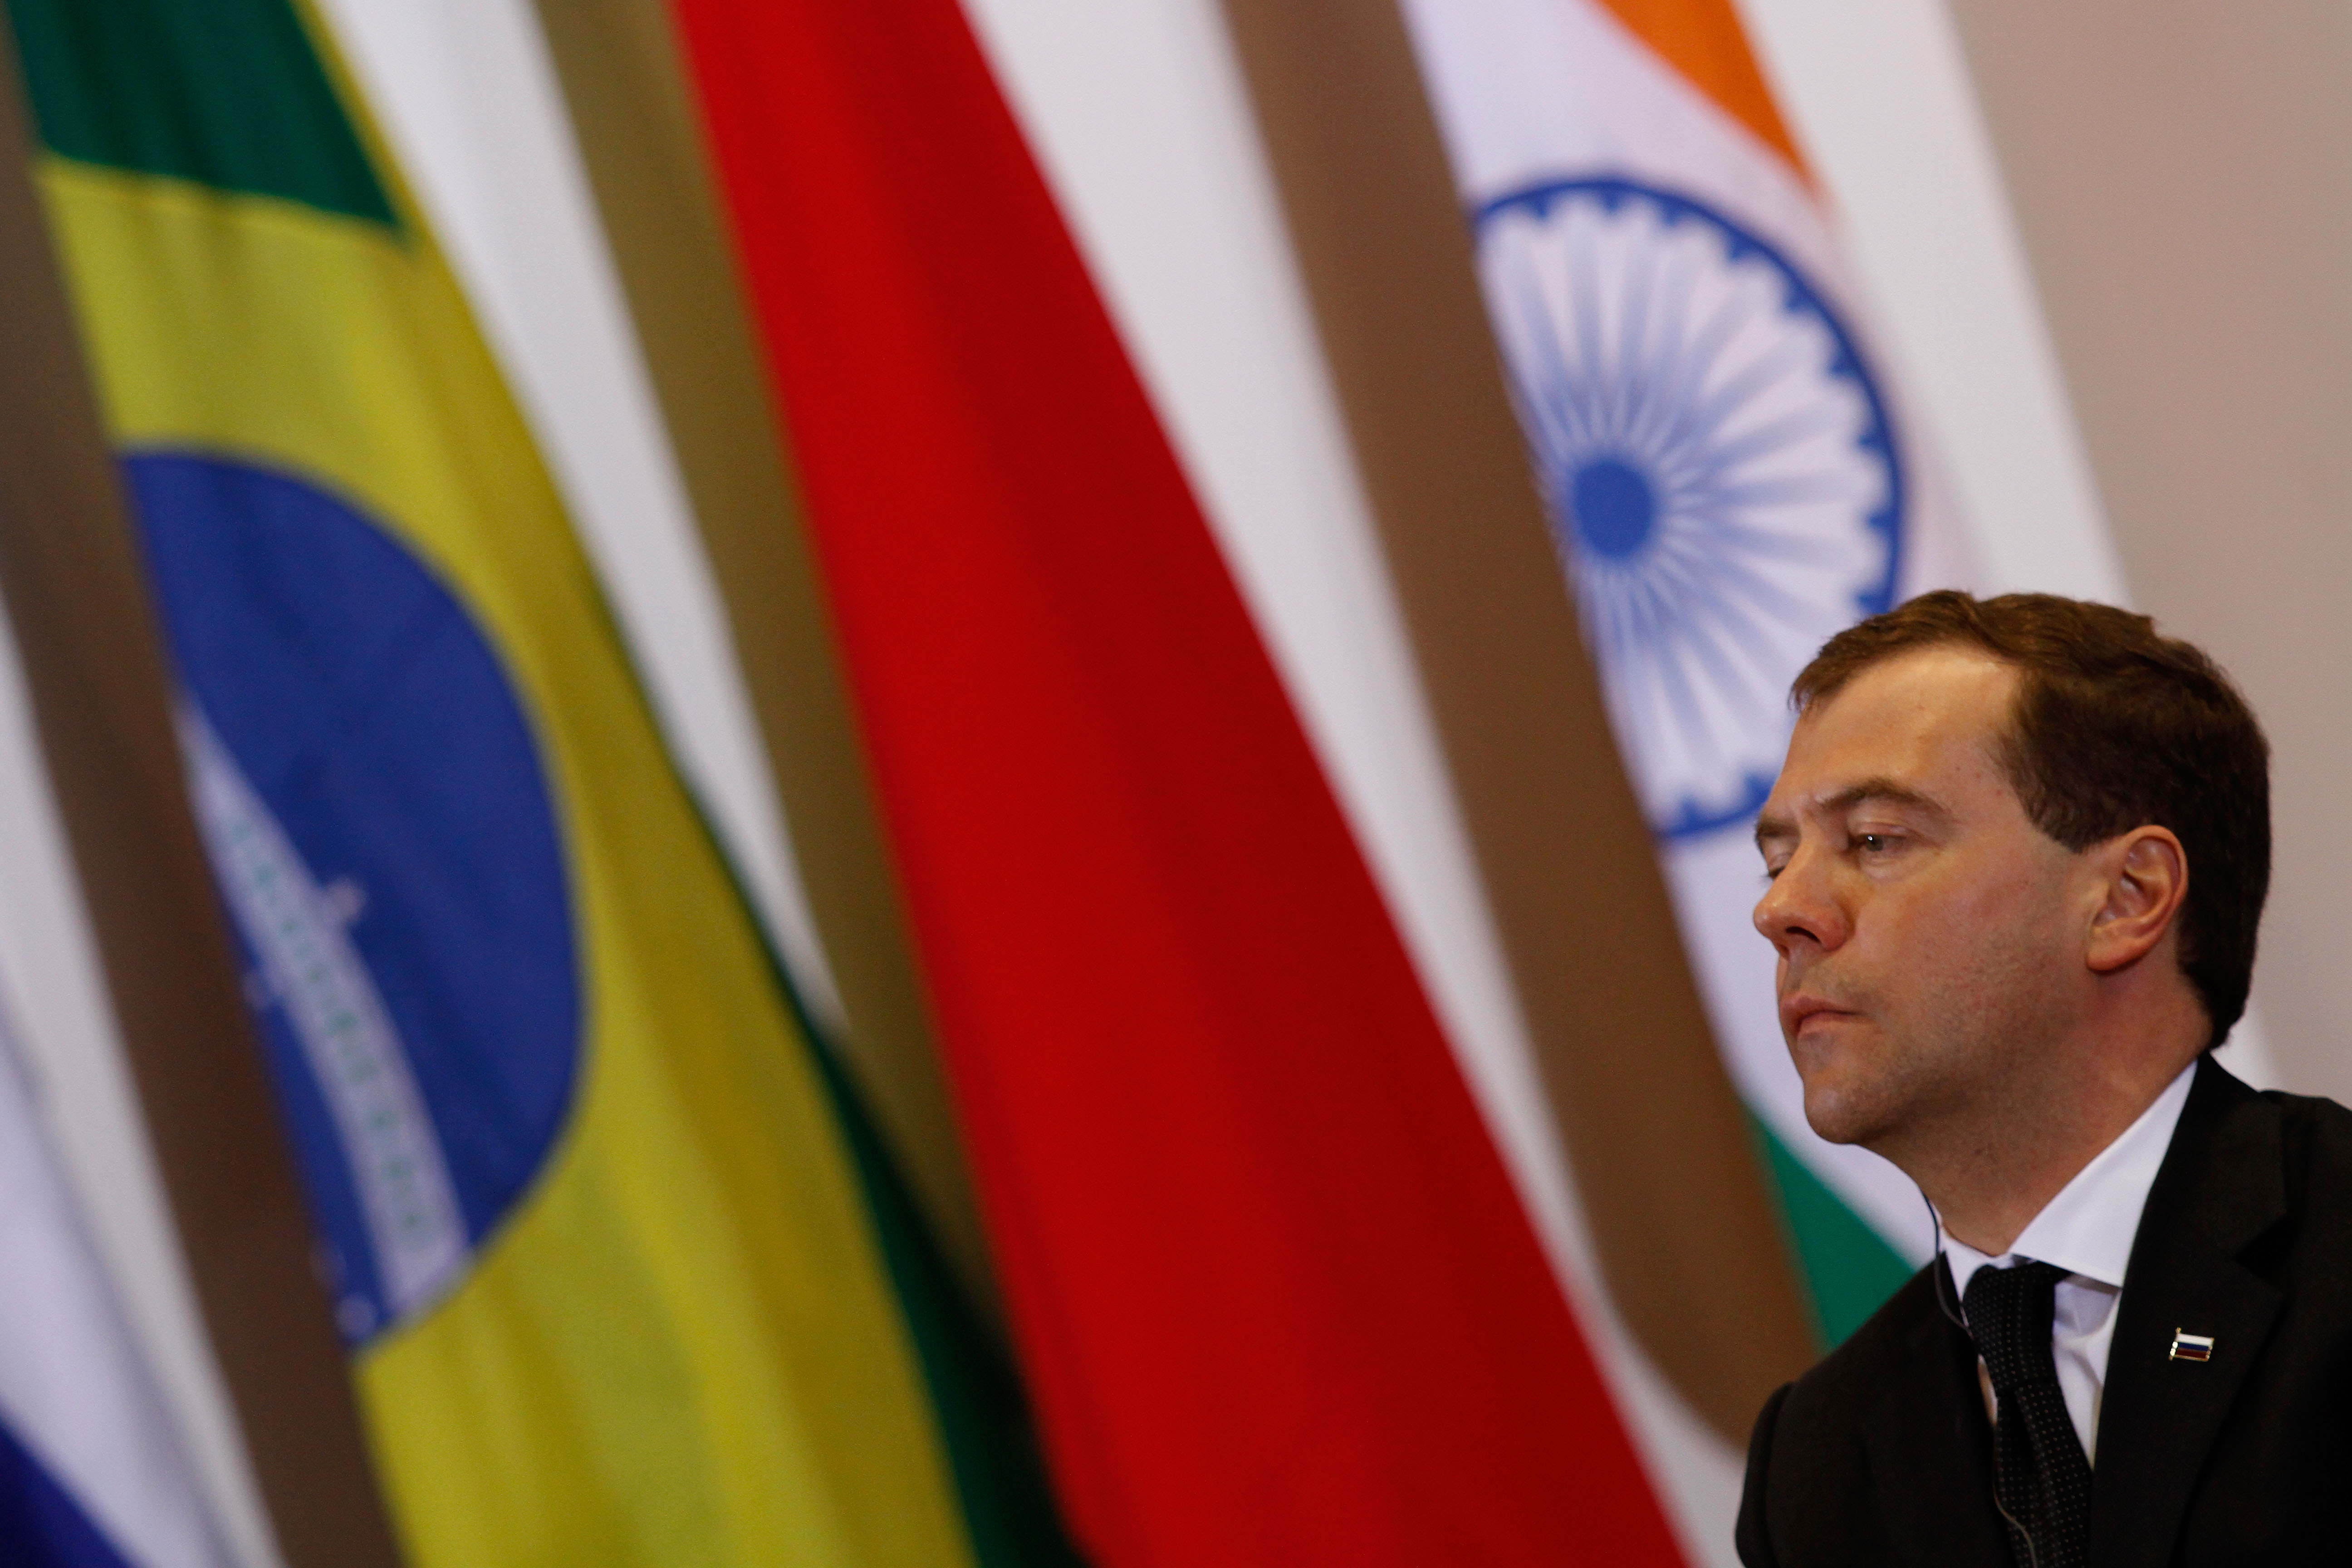 Russia's President Dmitri Medvedev attends the BRIC summit at the Itamaraty palace in Brasilia, Brazil on Thursday. The BRIC summit is a gathering of ...